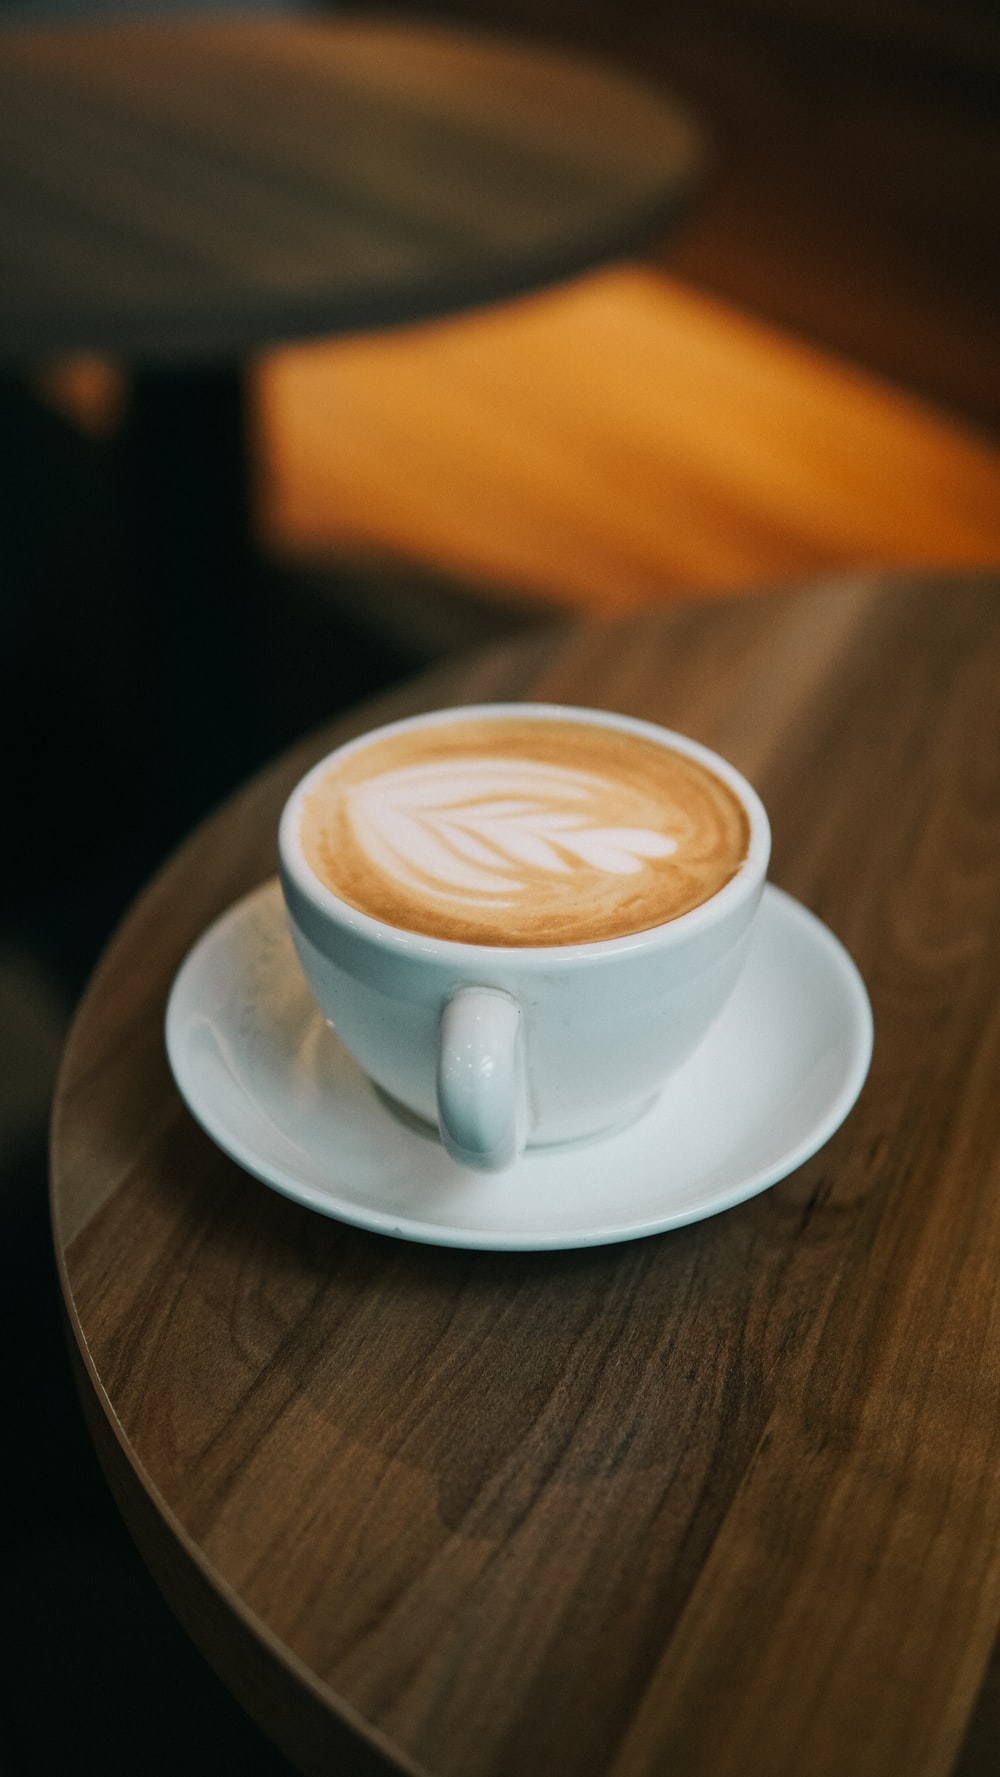 white ceramic cup with cappuccino on white ceramic saucer